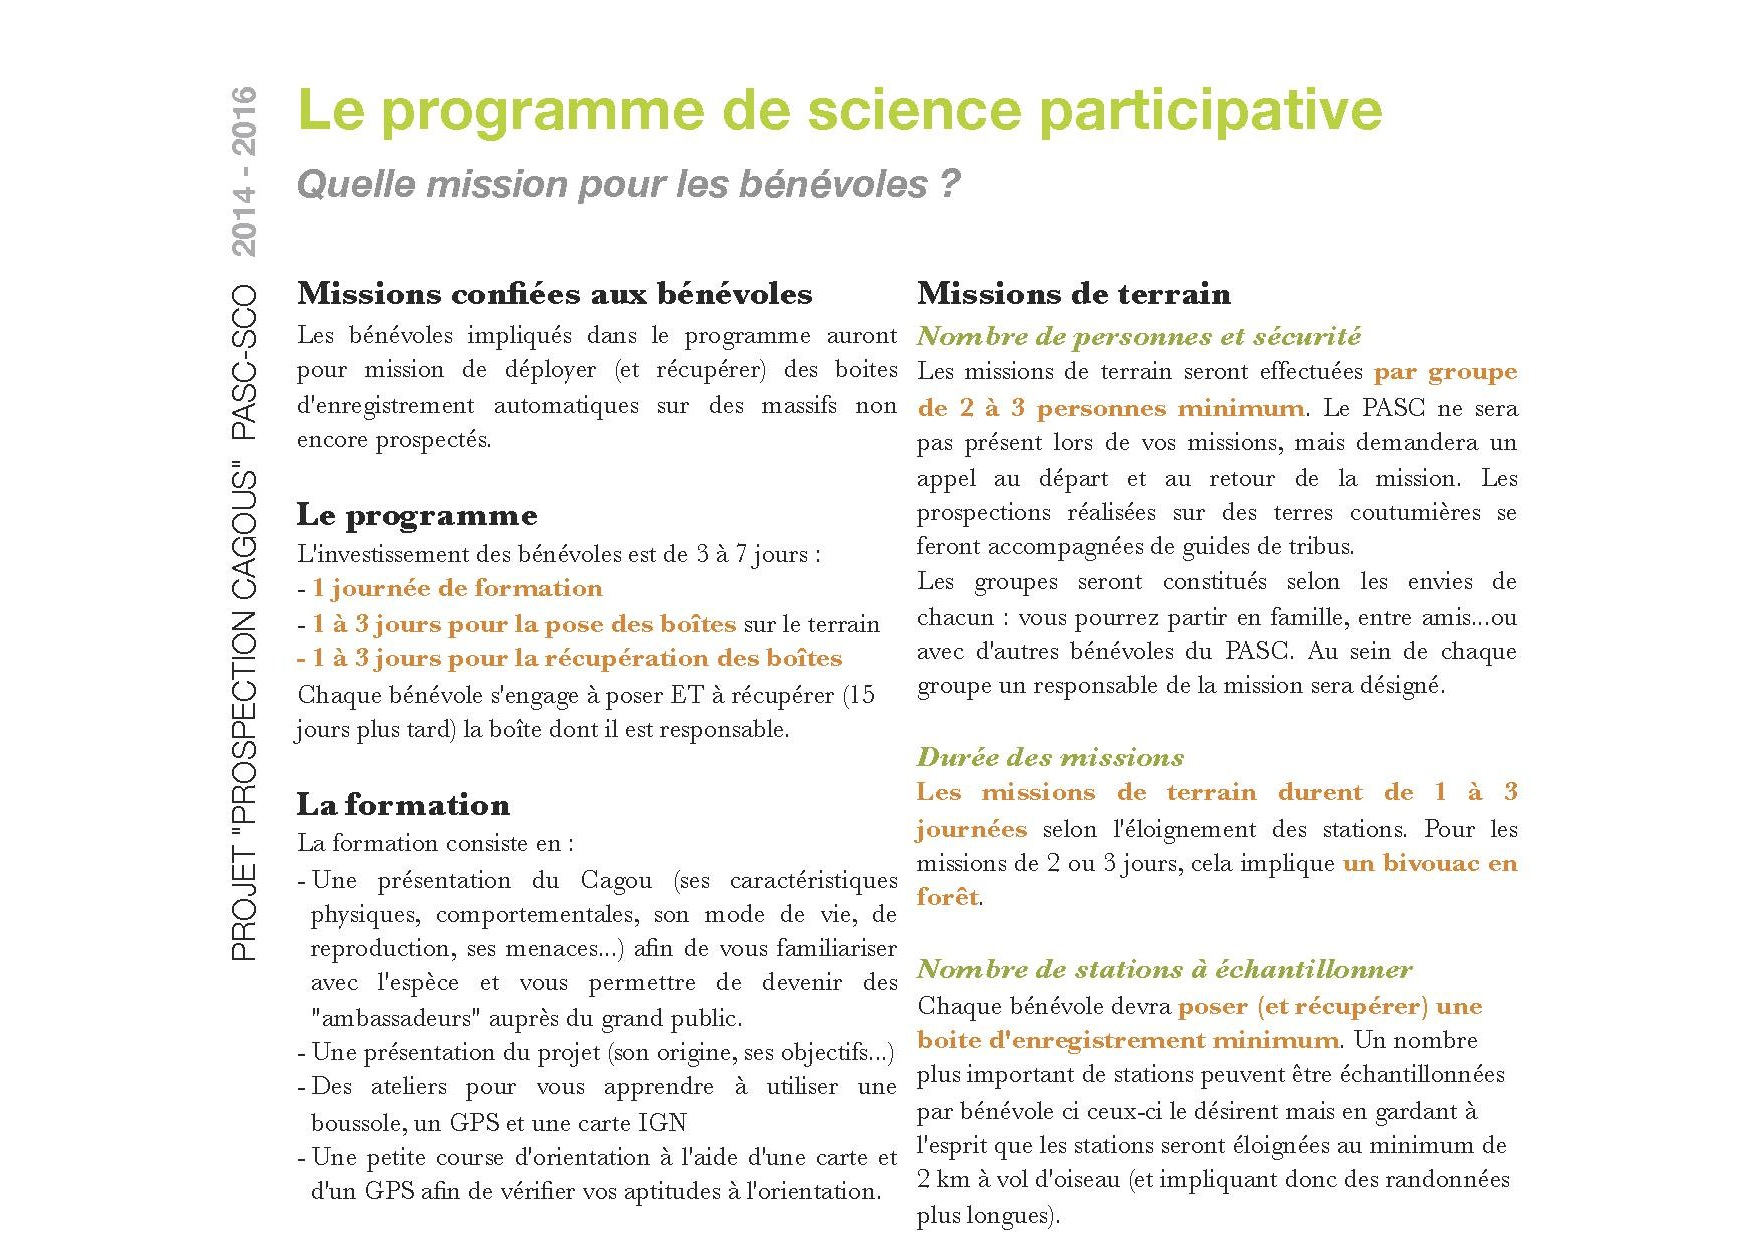 p3 Projet PROSPECTION CAGOU 2014 - Programme de science participative R